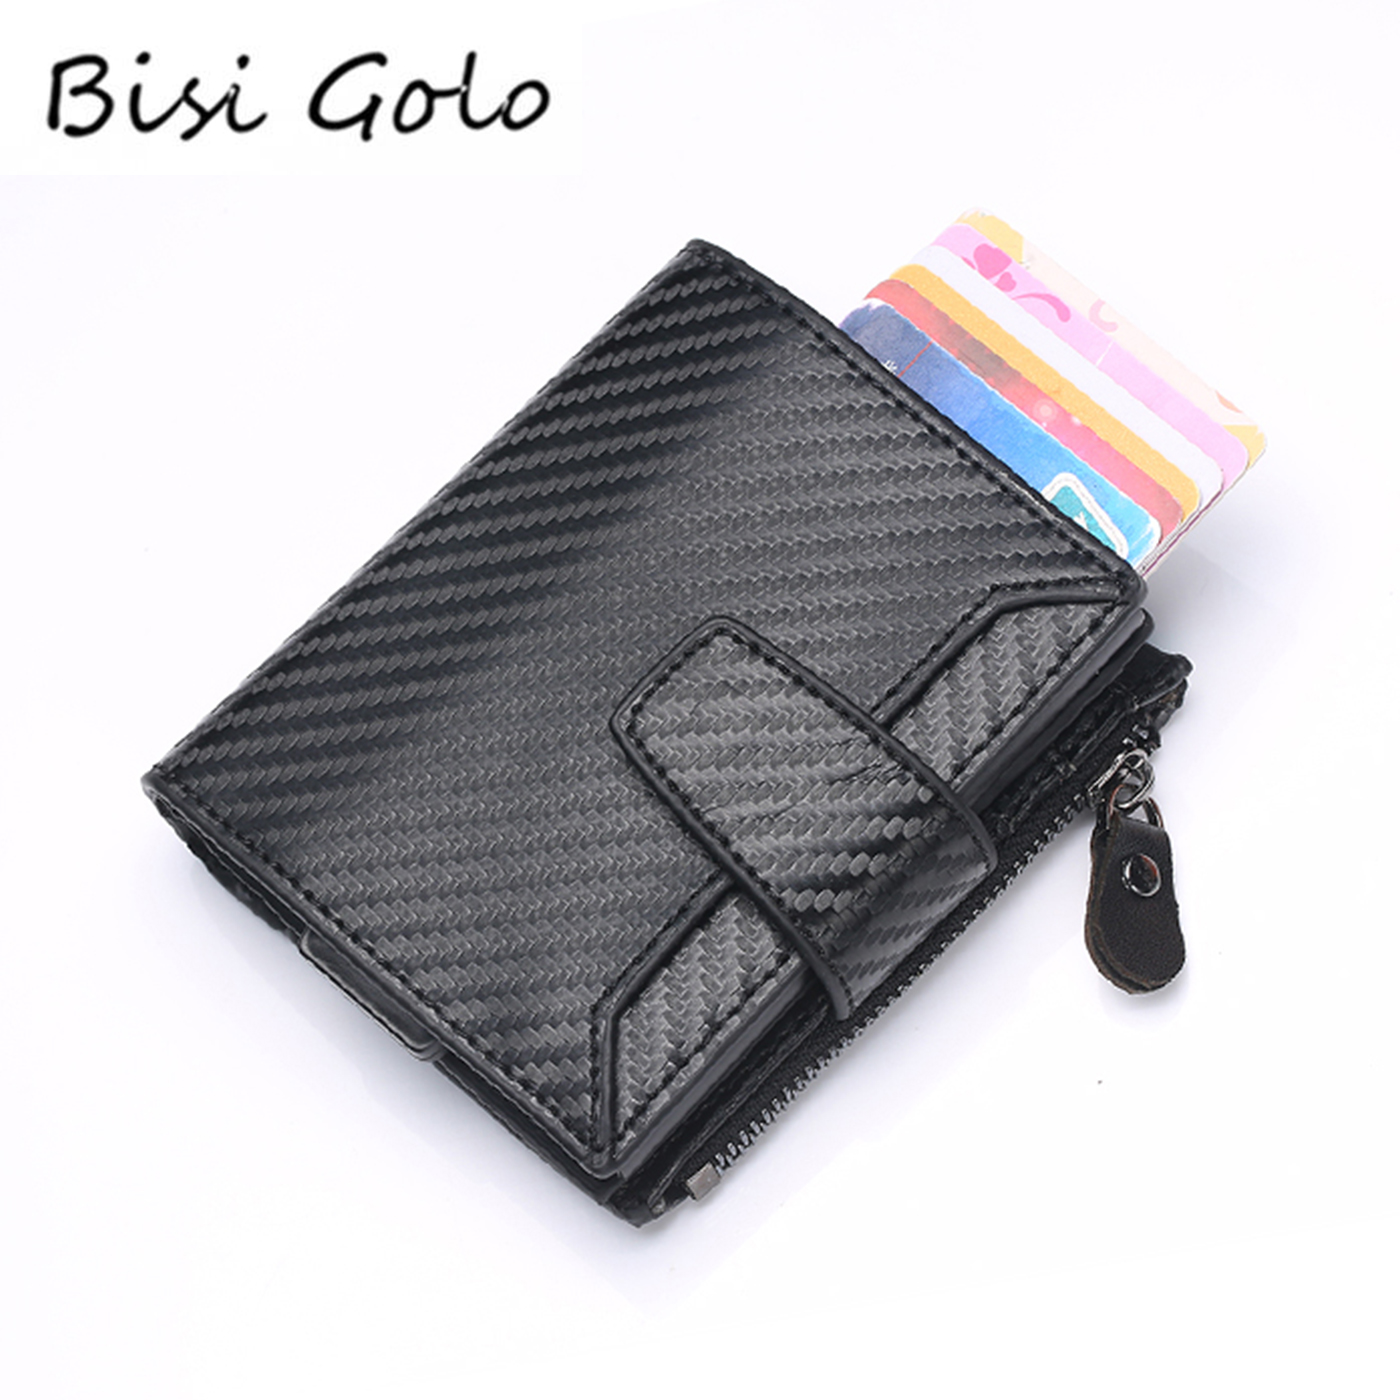 BISI GORO PU Leather Wallet Credit Card Holders Rfid Automatic Card Set Vintage Business Aluminum Wallet New Vintage Card Holder